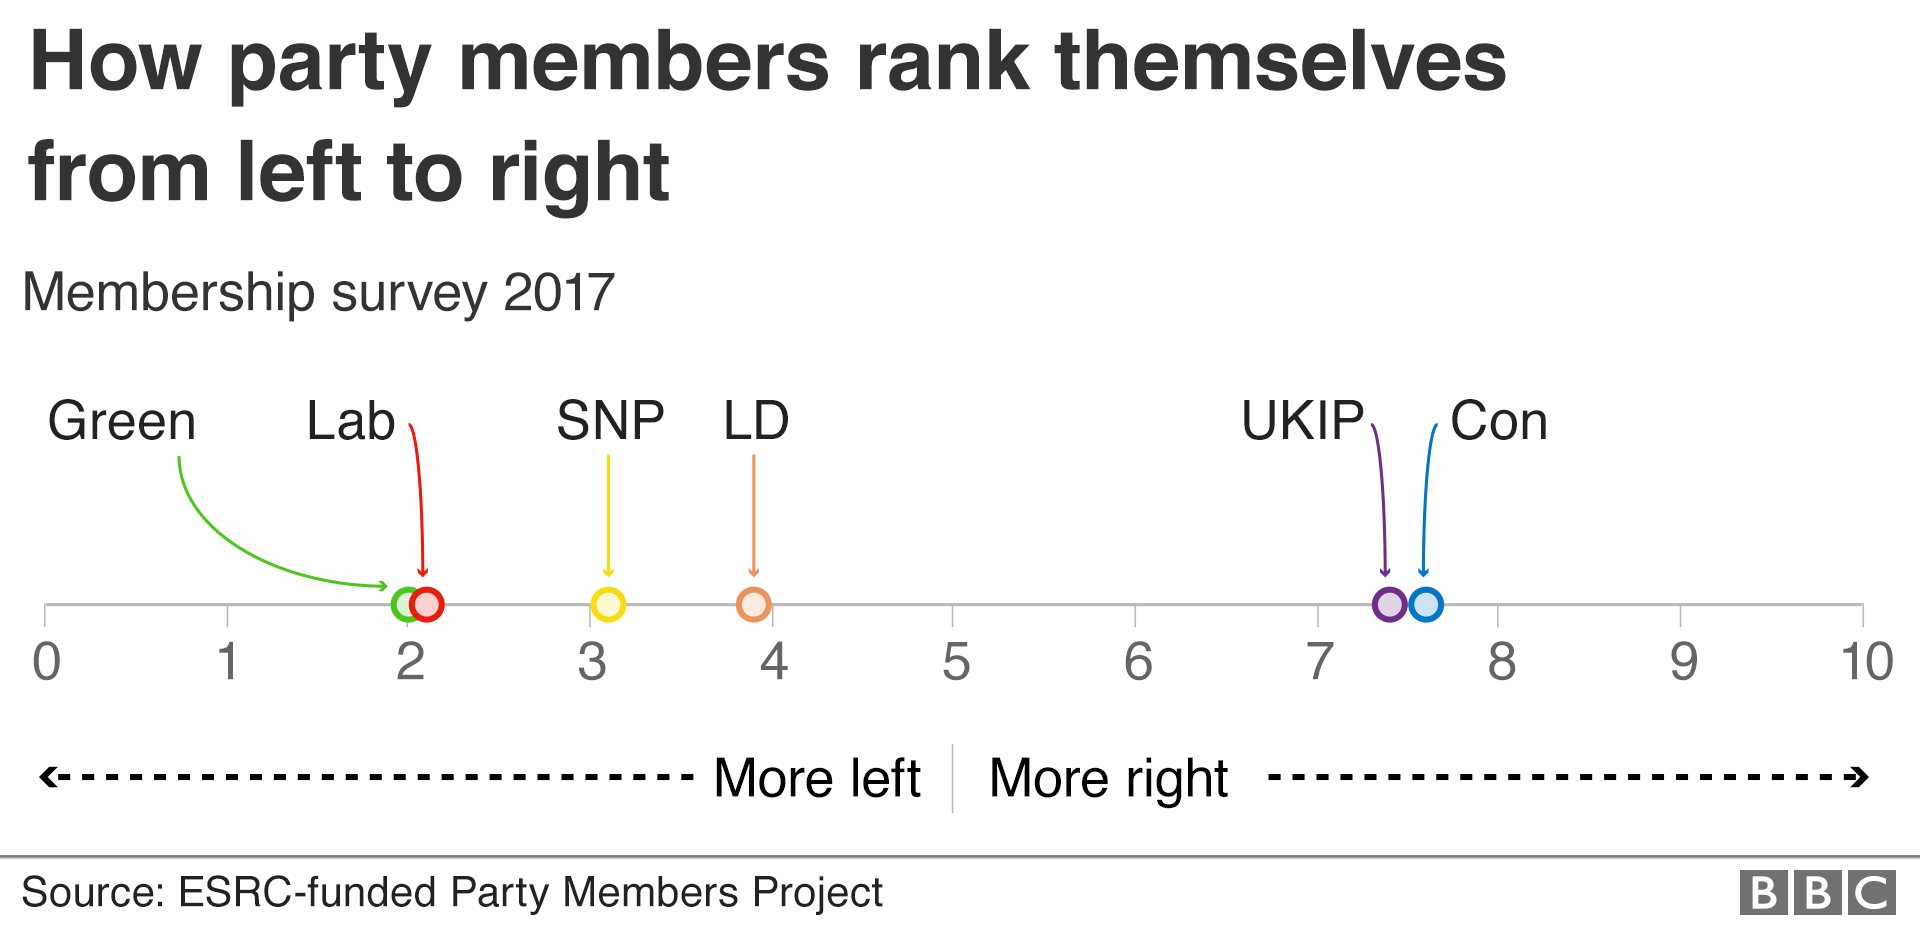 Tory leadership: Who gets to choose the UK's next prime